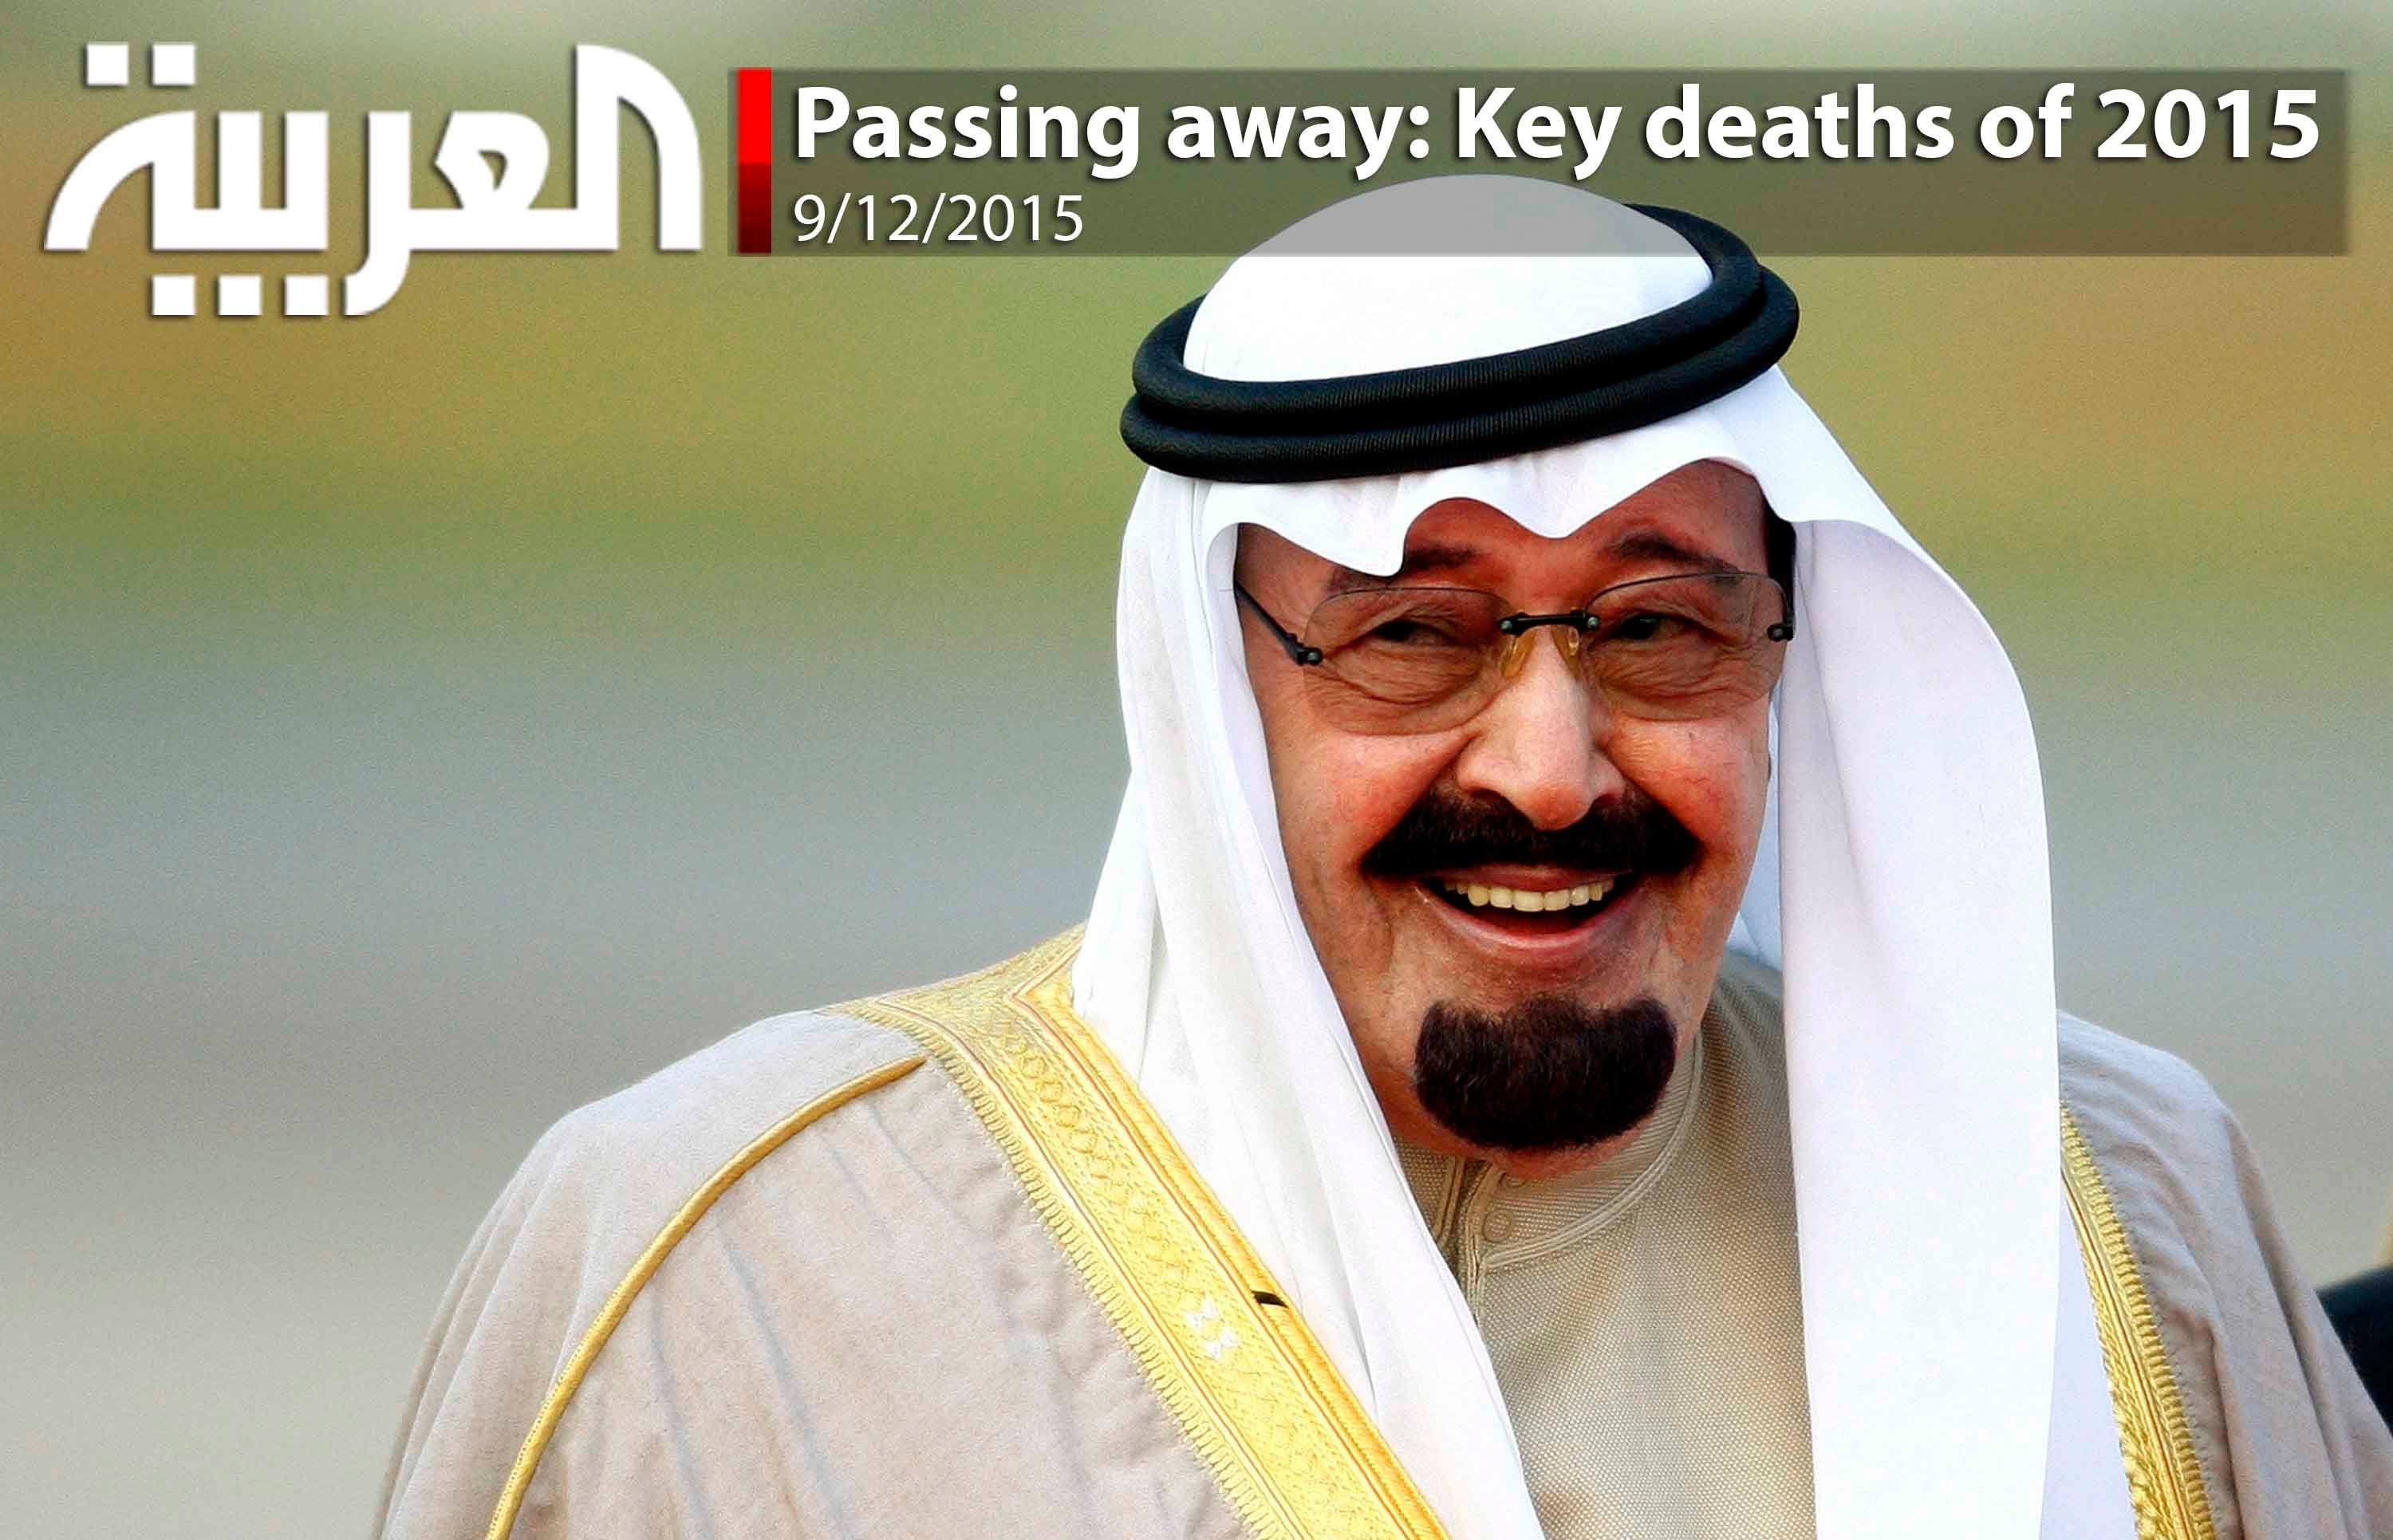 Passing away: Key deaths of 2015